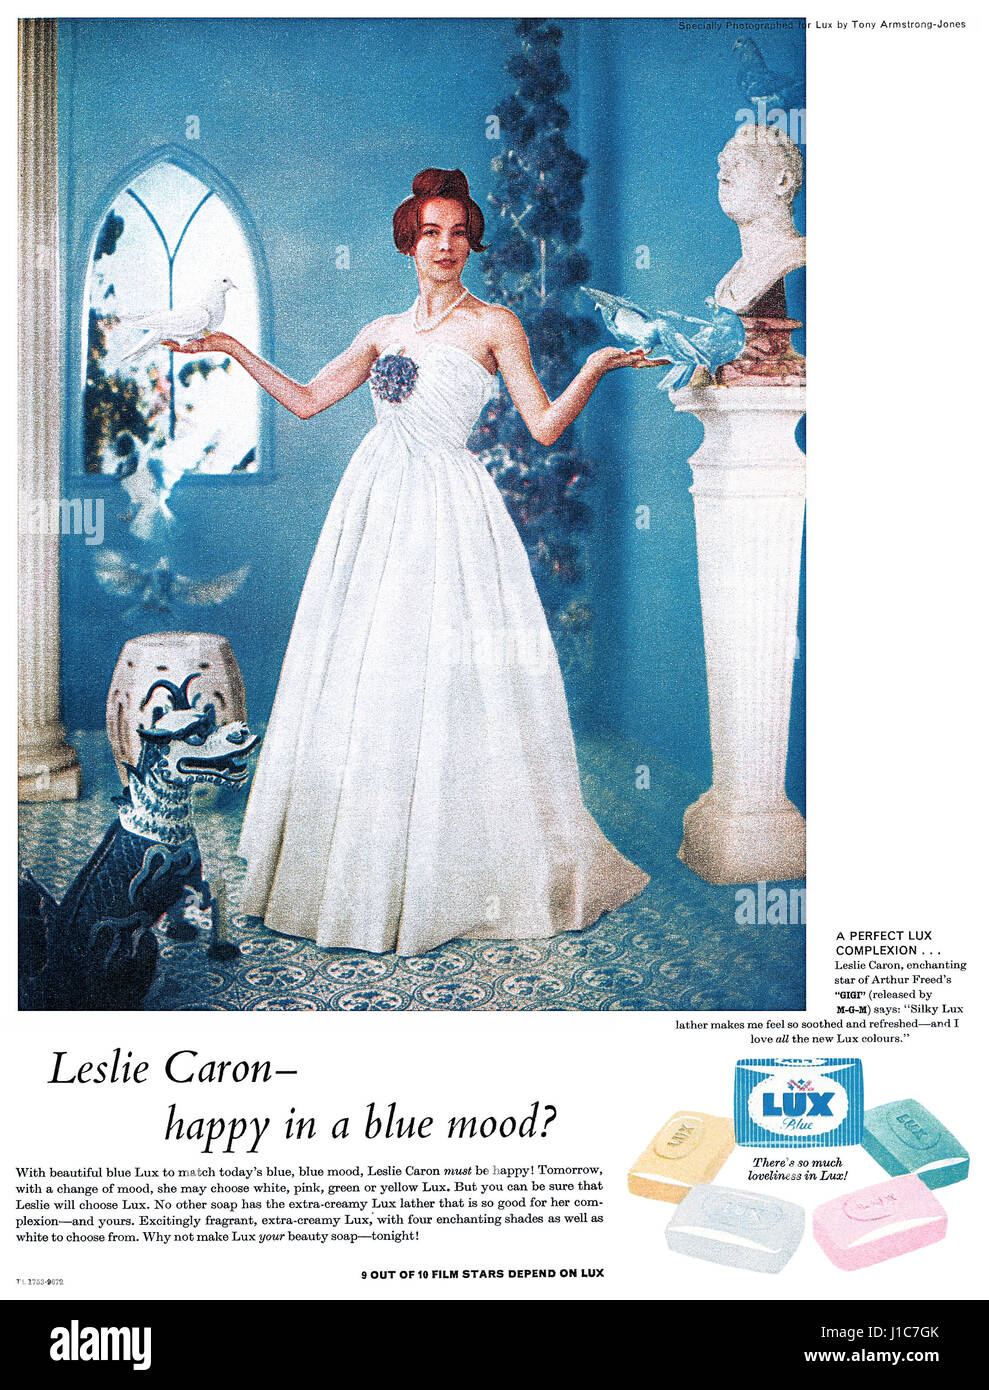 1959 British advertisement for Lux Soap, featuring film star Leslie Caron. - Stock Image